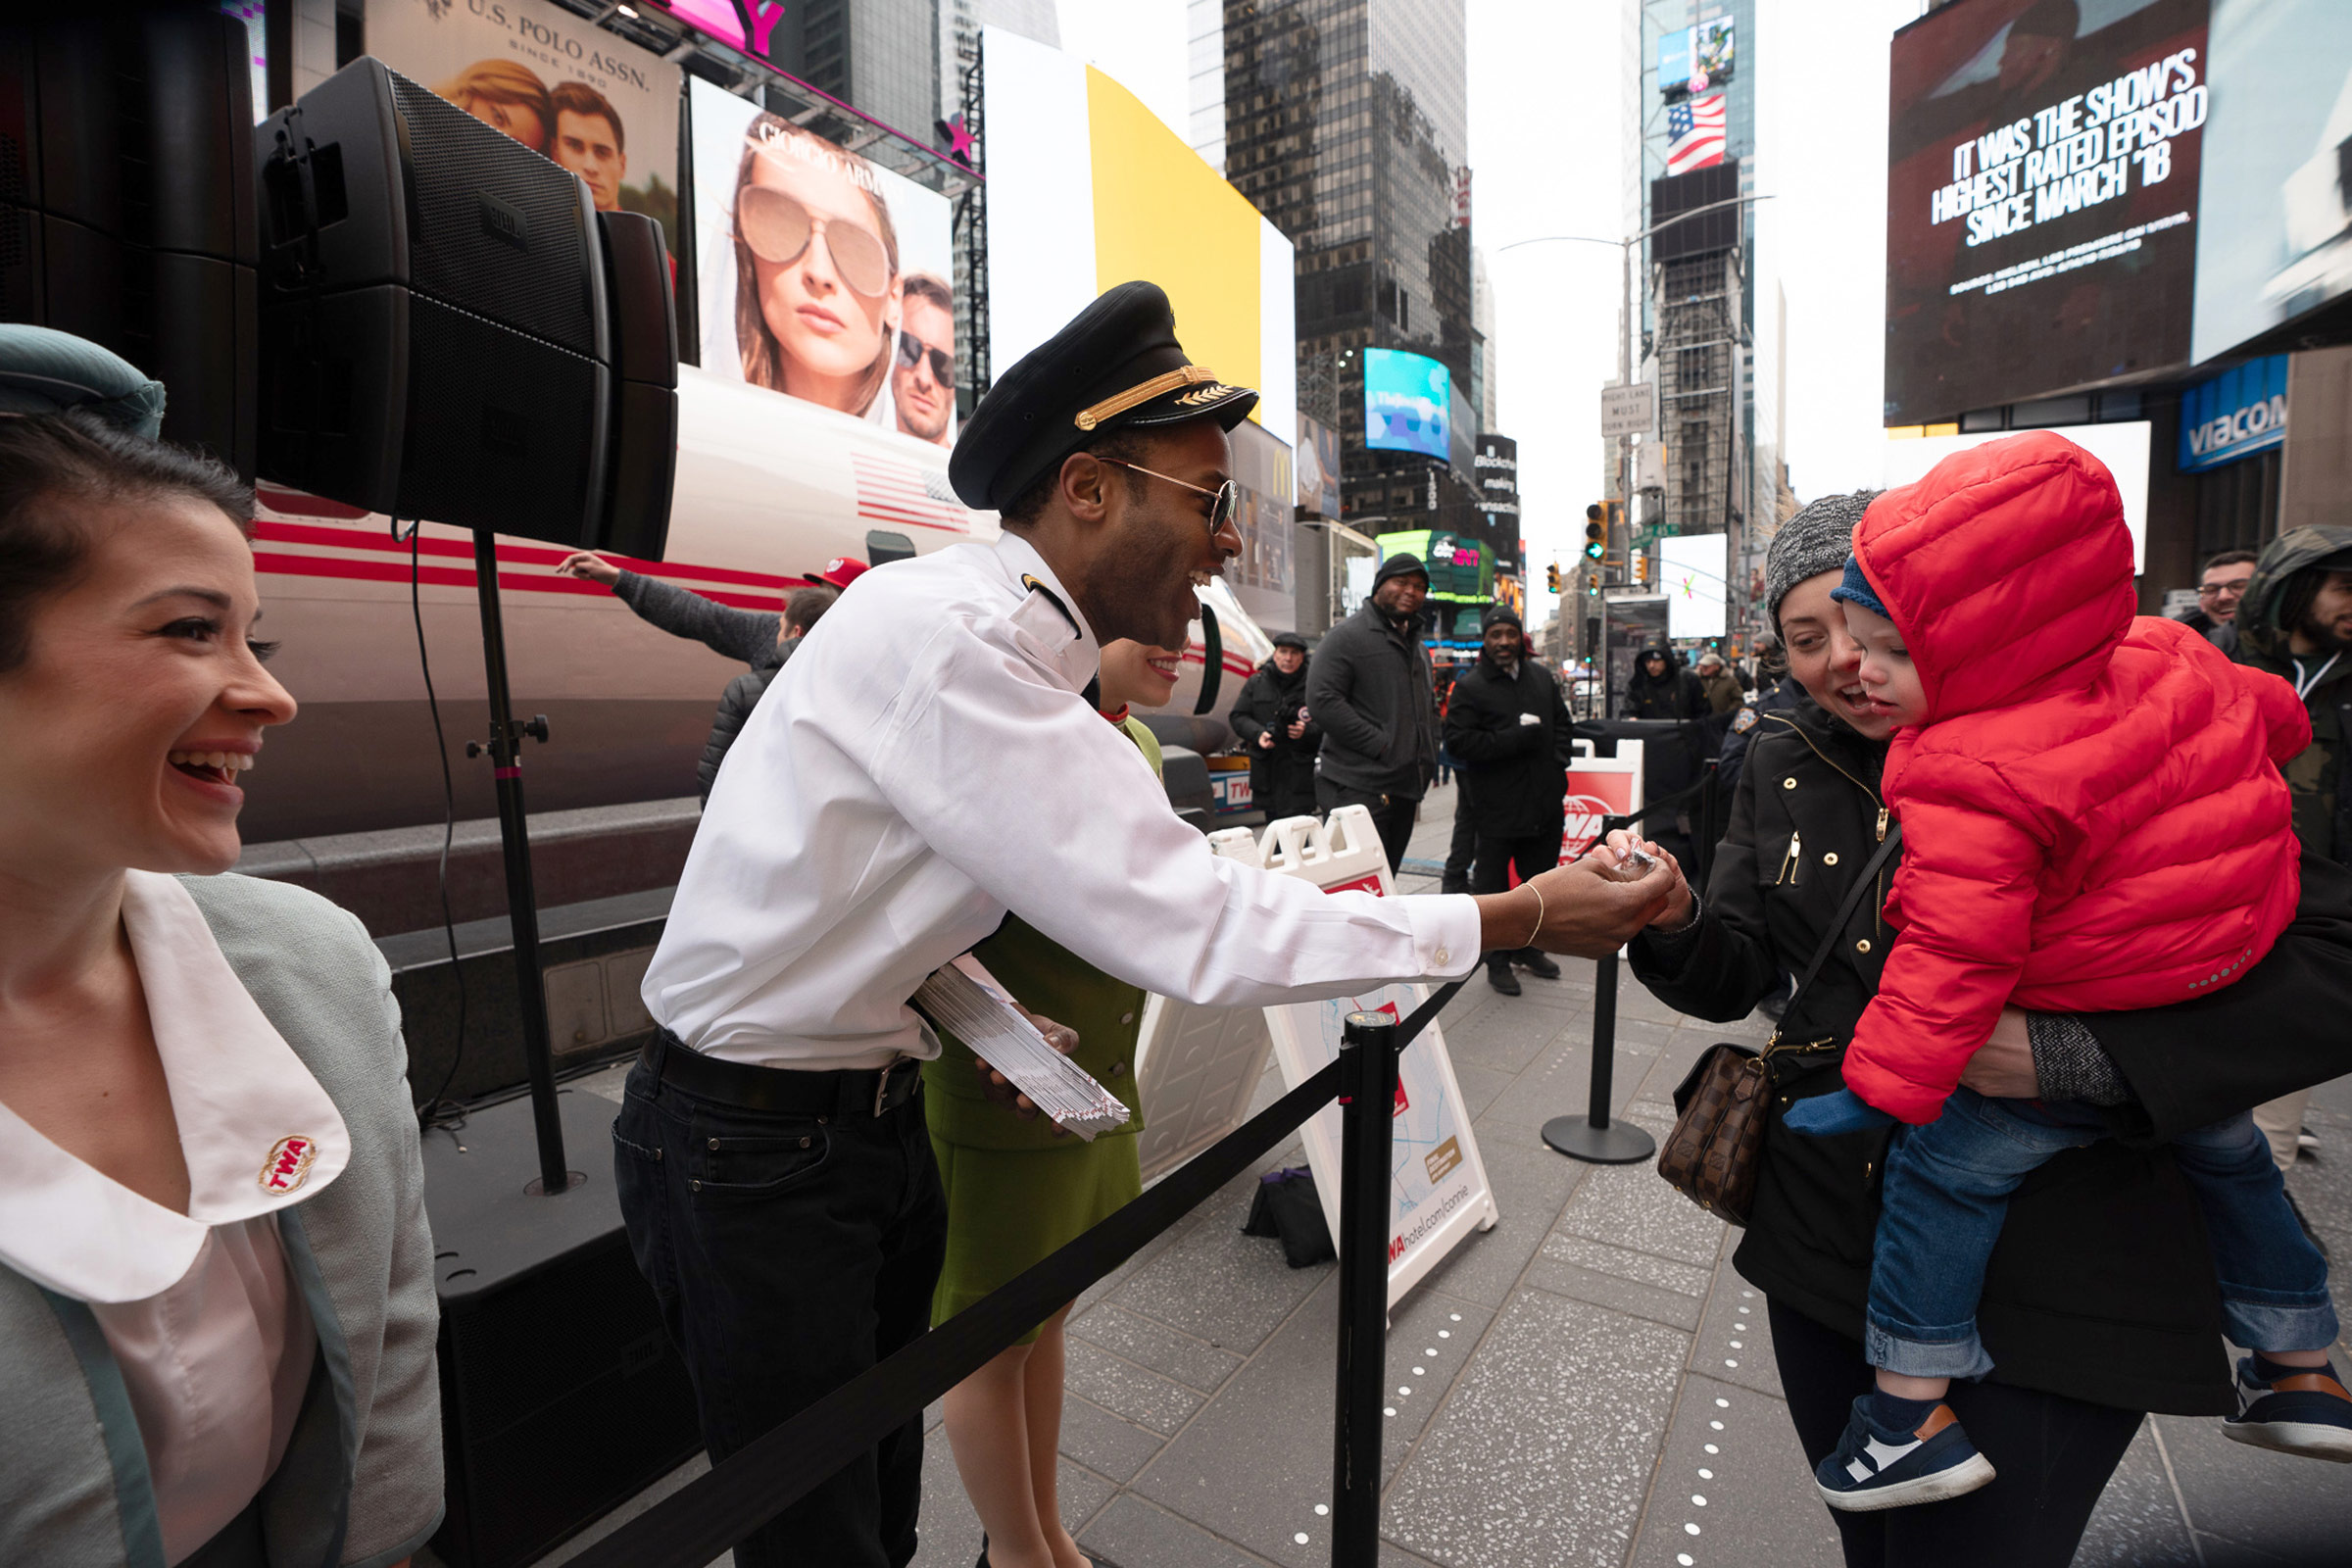 Connie's crew — dressed in authentic vintage TWA uniforms — greet the Times Square crowds on March 23, 2019.